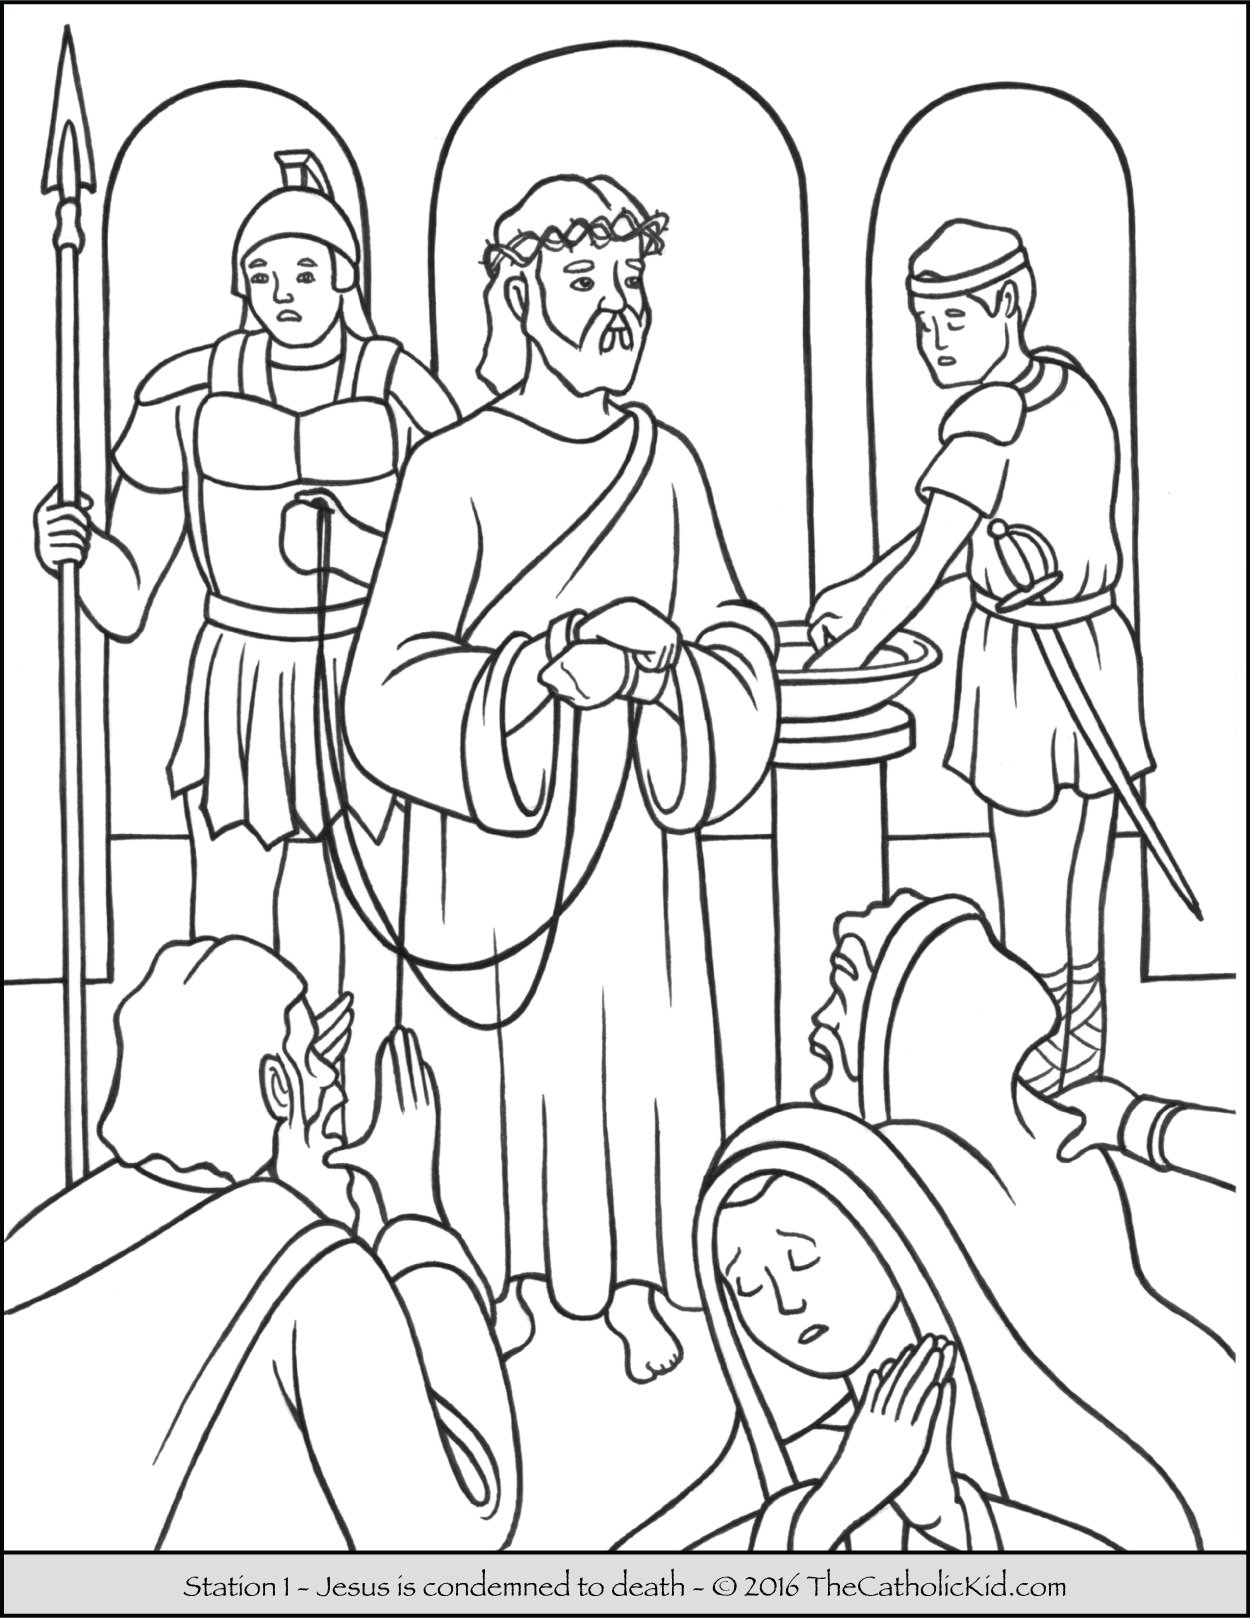 Stations of the Cross Coloring Pages 1 - Jesus is condemned to death